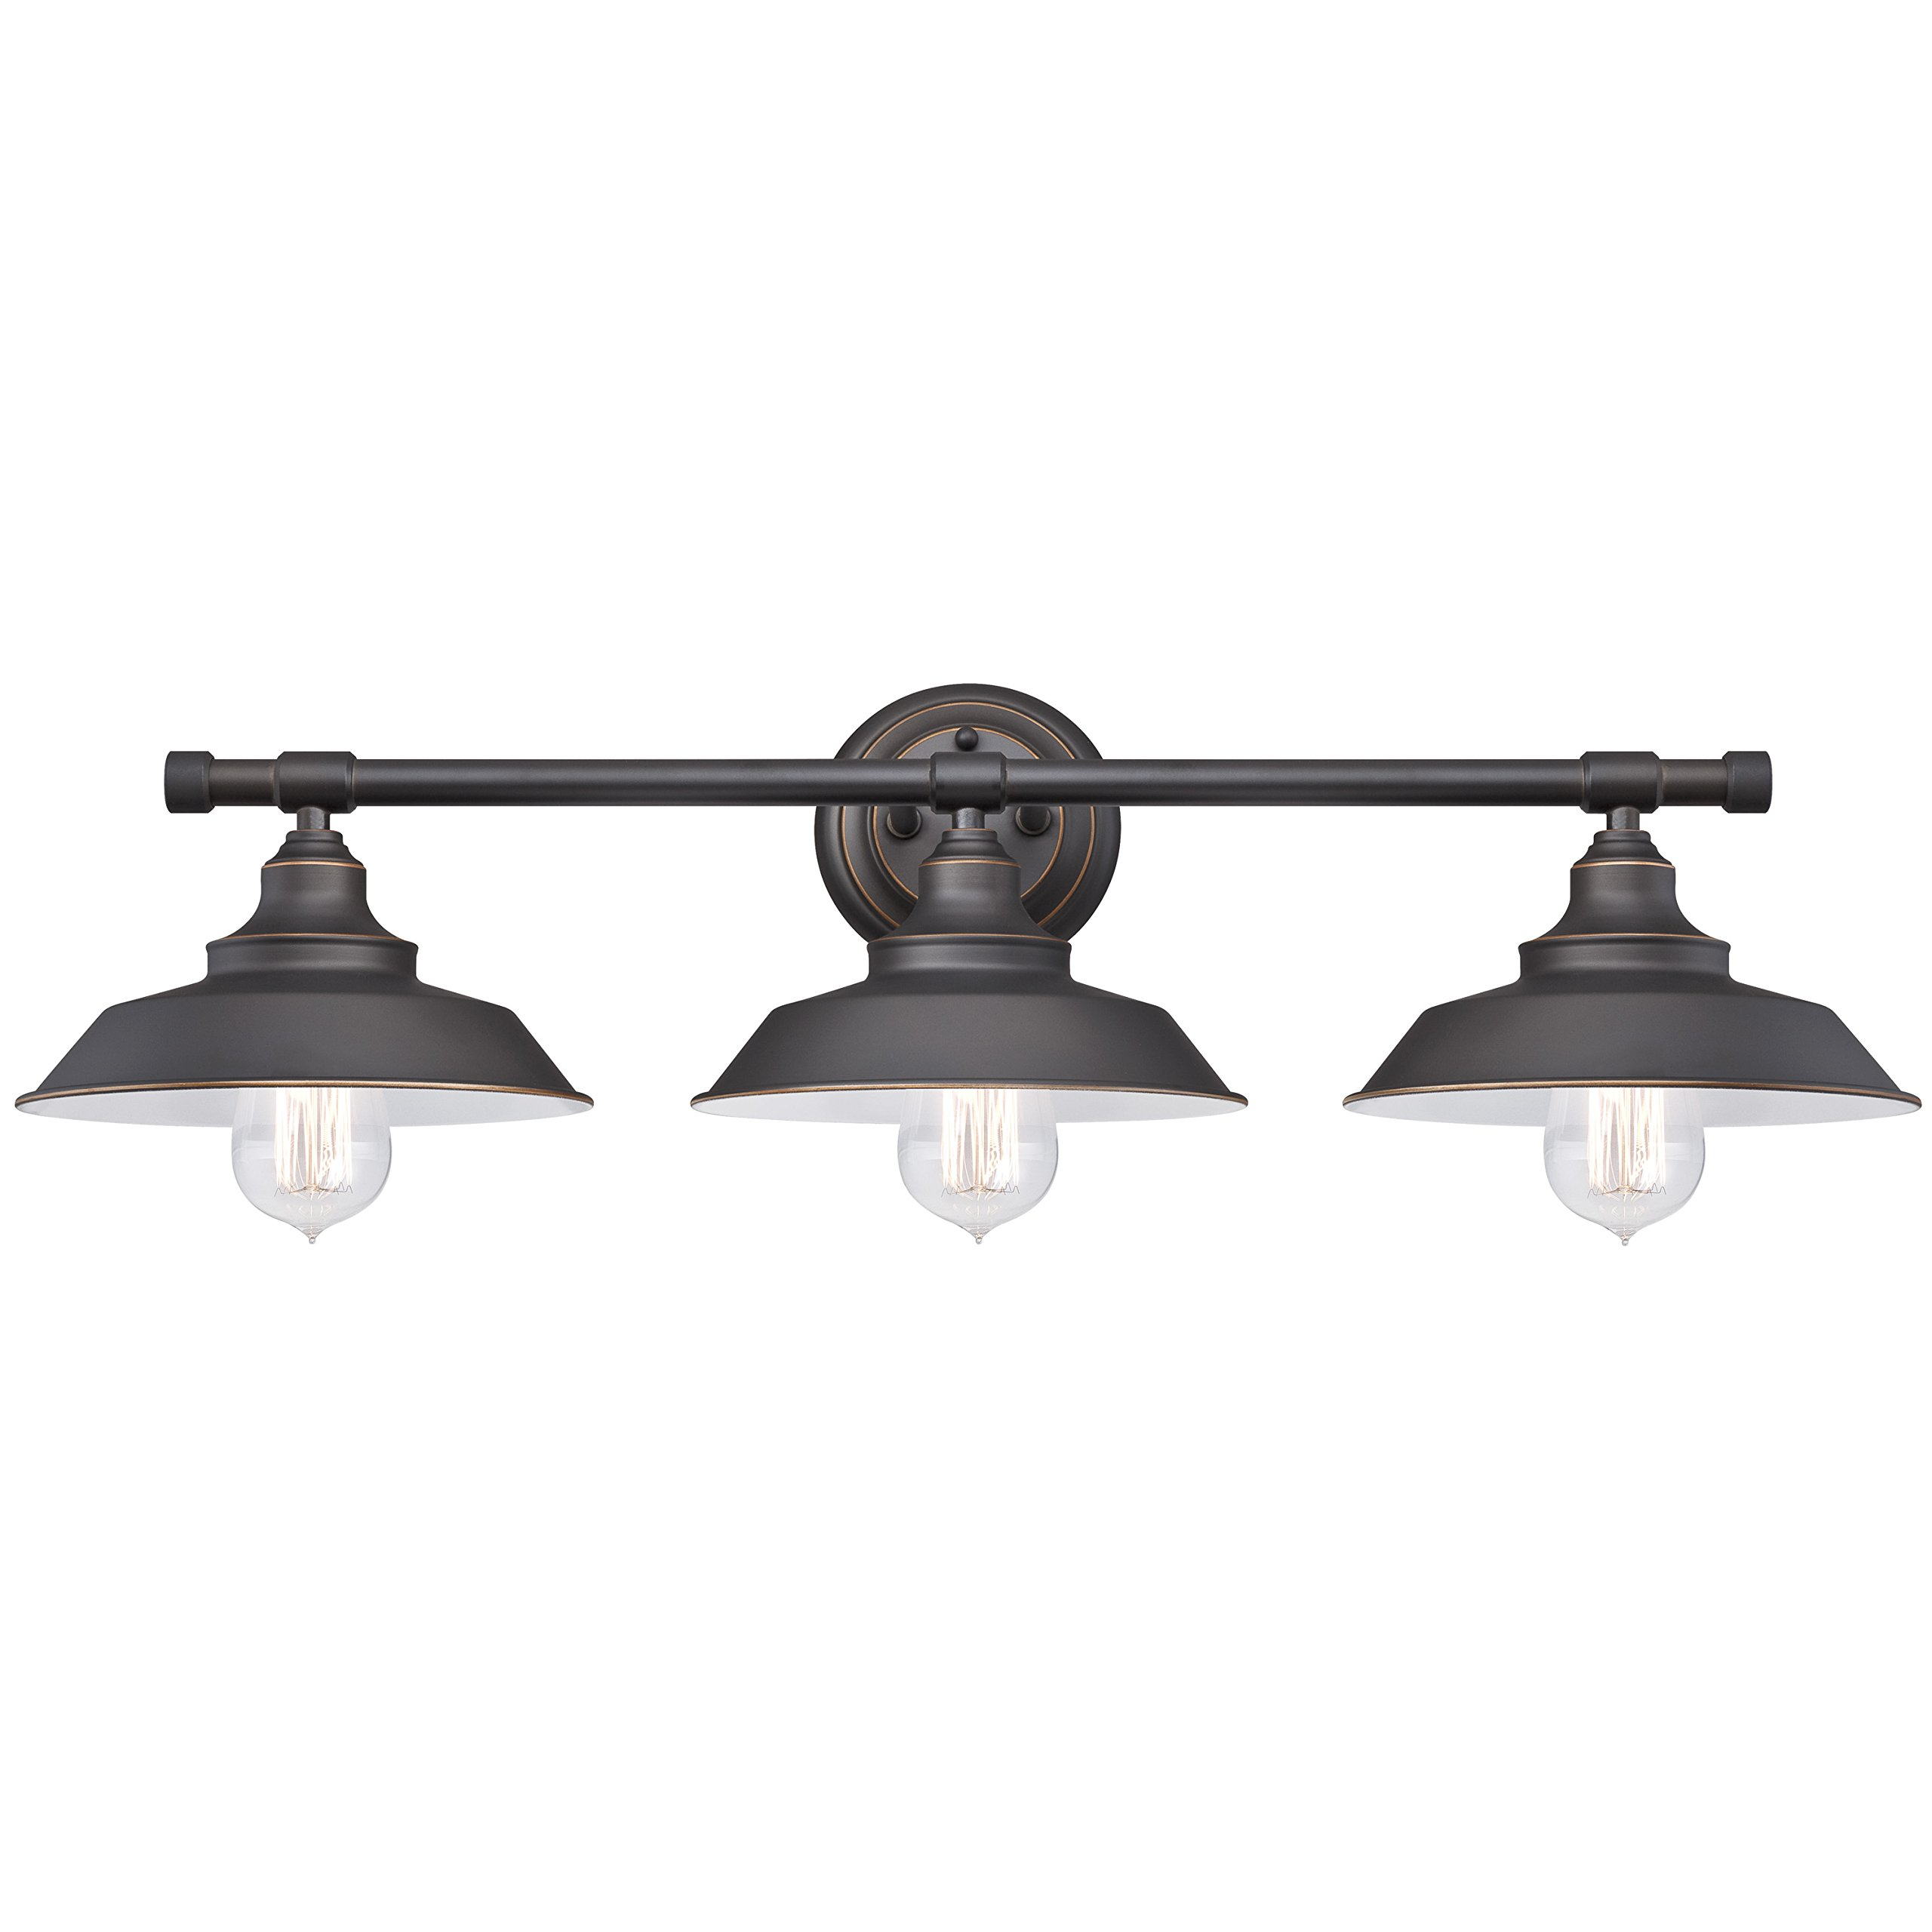 industrial barn lighting wall style lights menards farmhouse outdoor post